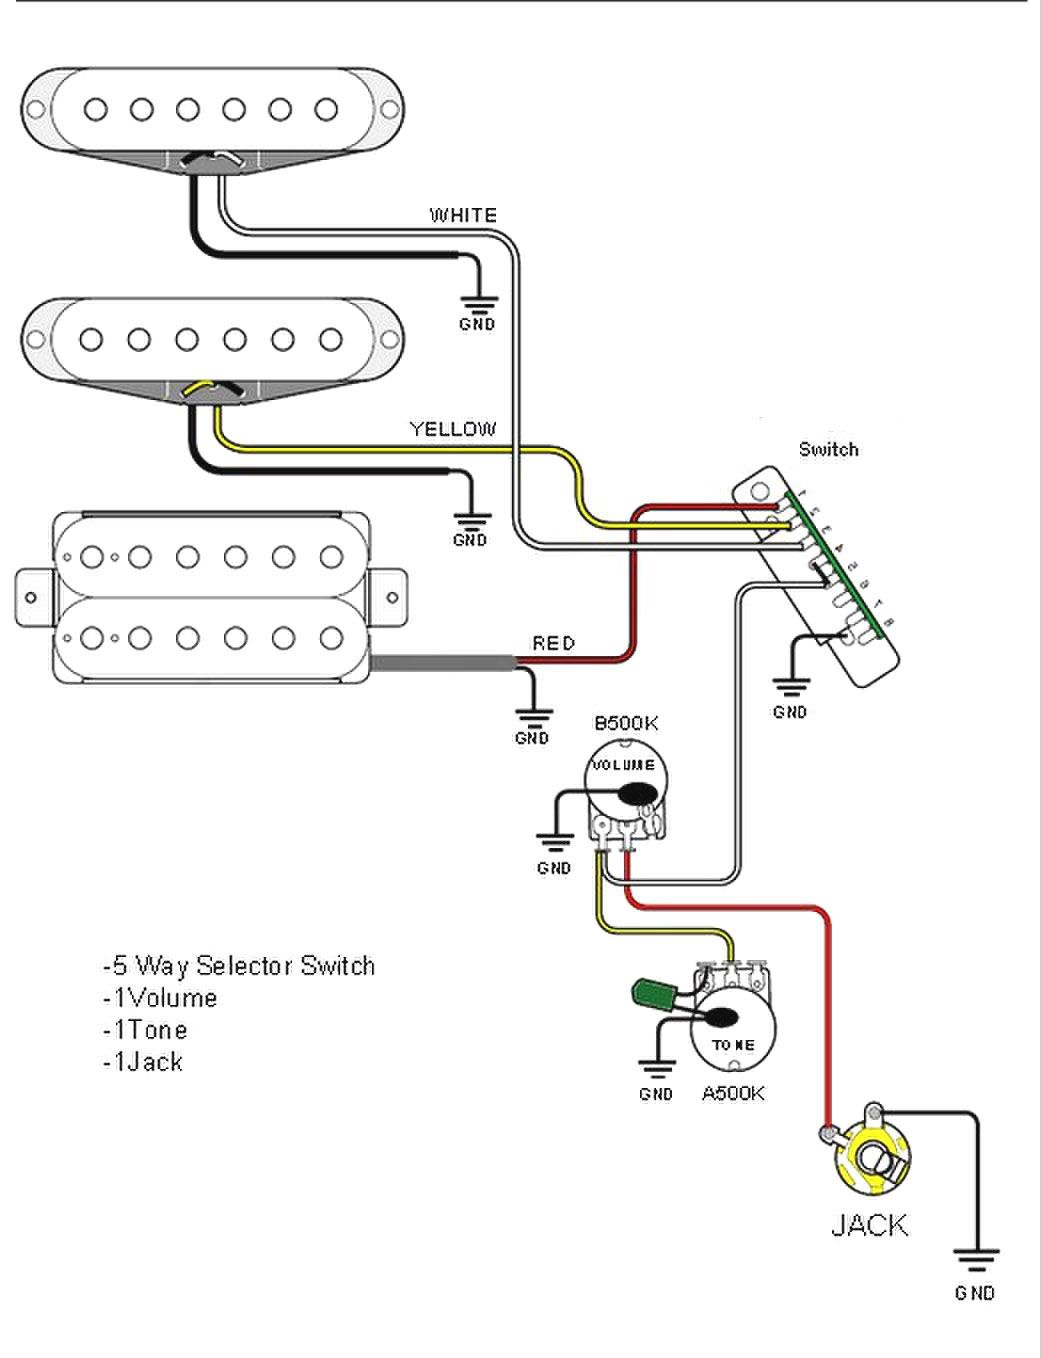 2b19016e5340e271ccc7e838f8d22d5b jeff baxter strat wiring diagram google search guitar wiring 2 Humbucker Wiring Diagrams at gsmx.co